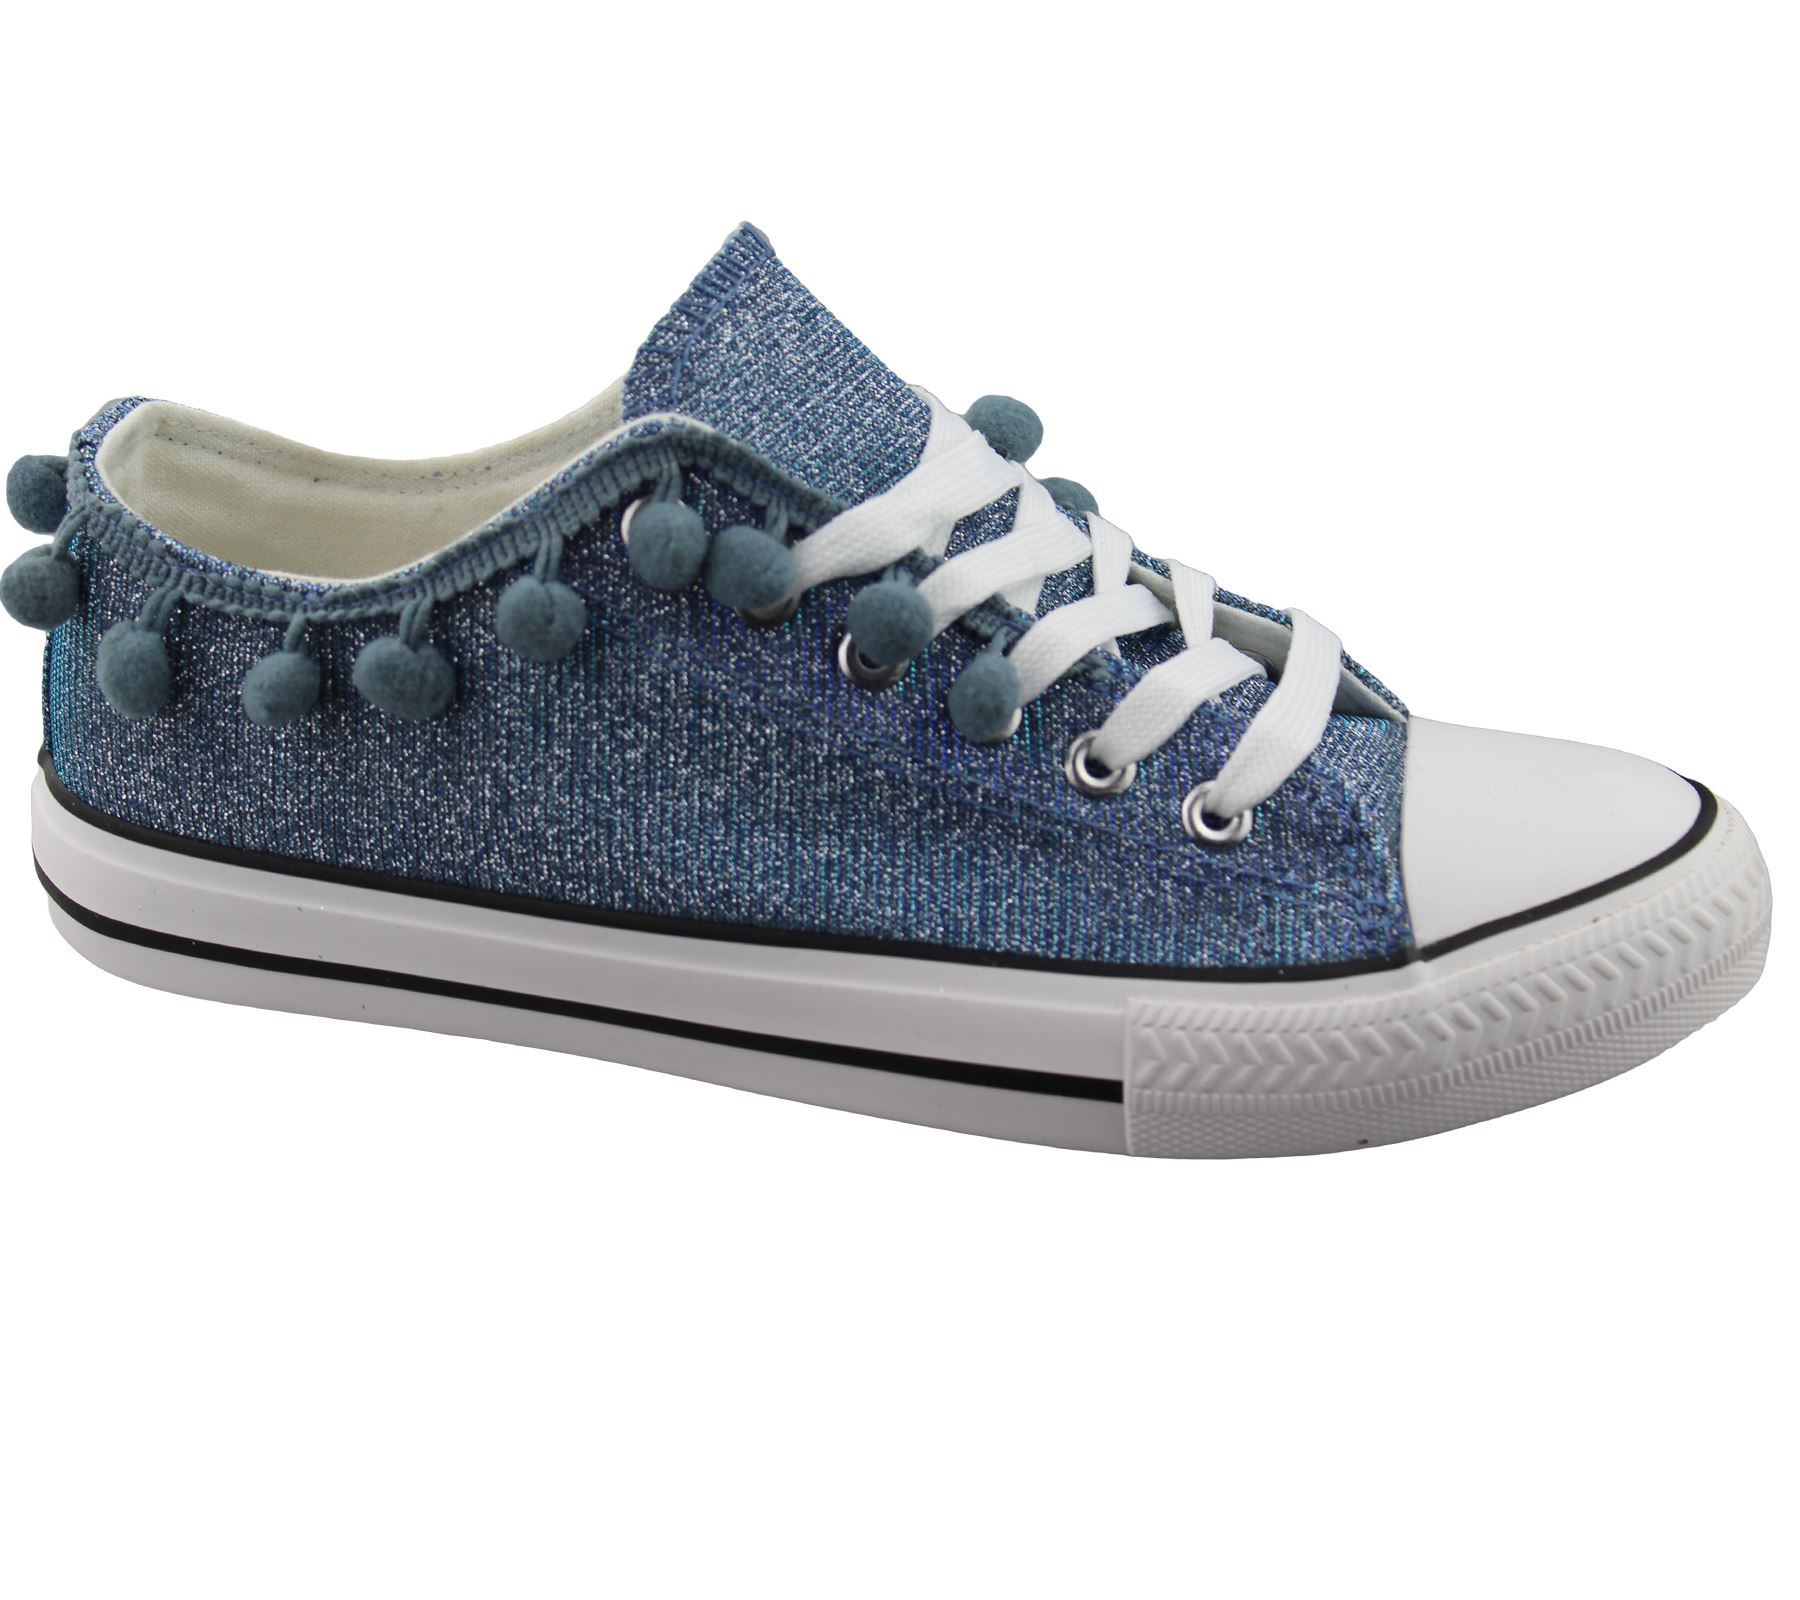 Womens-Sneakers-Flat-Pumps-Ladies-Glittered-Summer-Plimsole-Canvas-Shoes